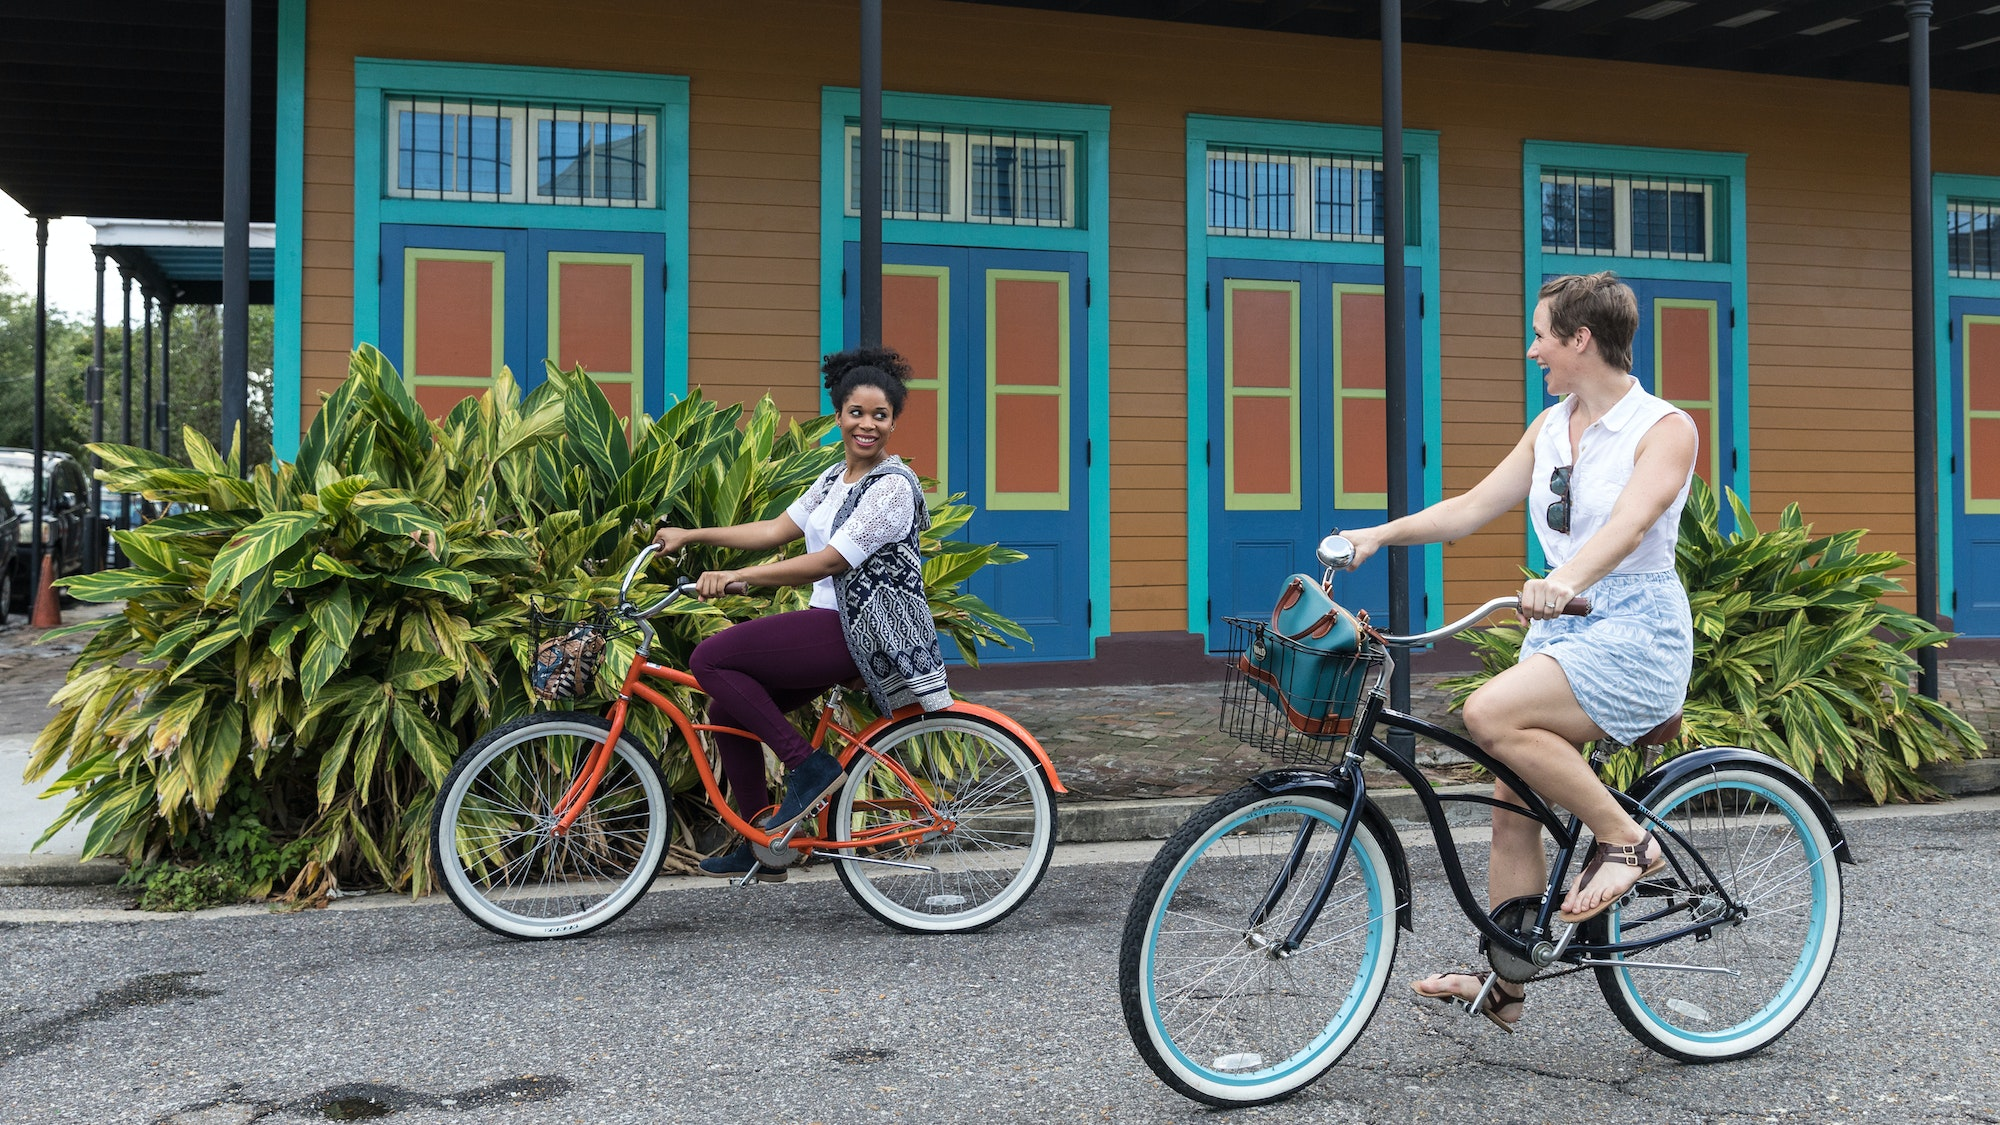 Go in search of New Orleans history on two wheels with FreeWheelin' Bike Tours.